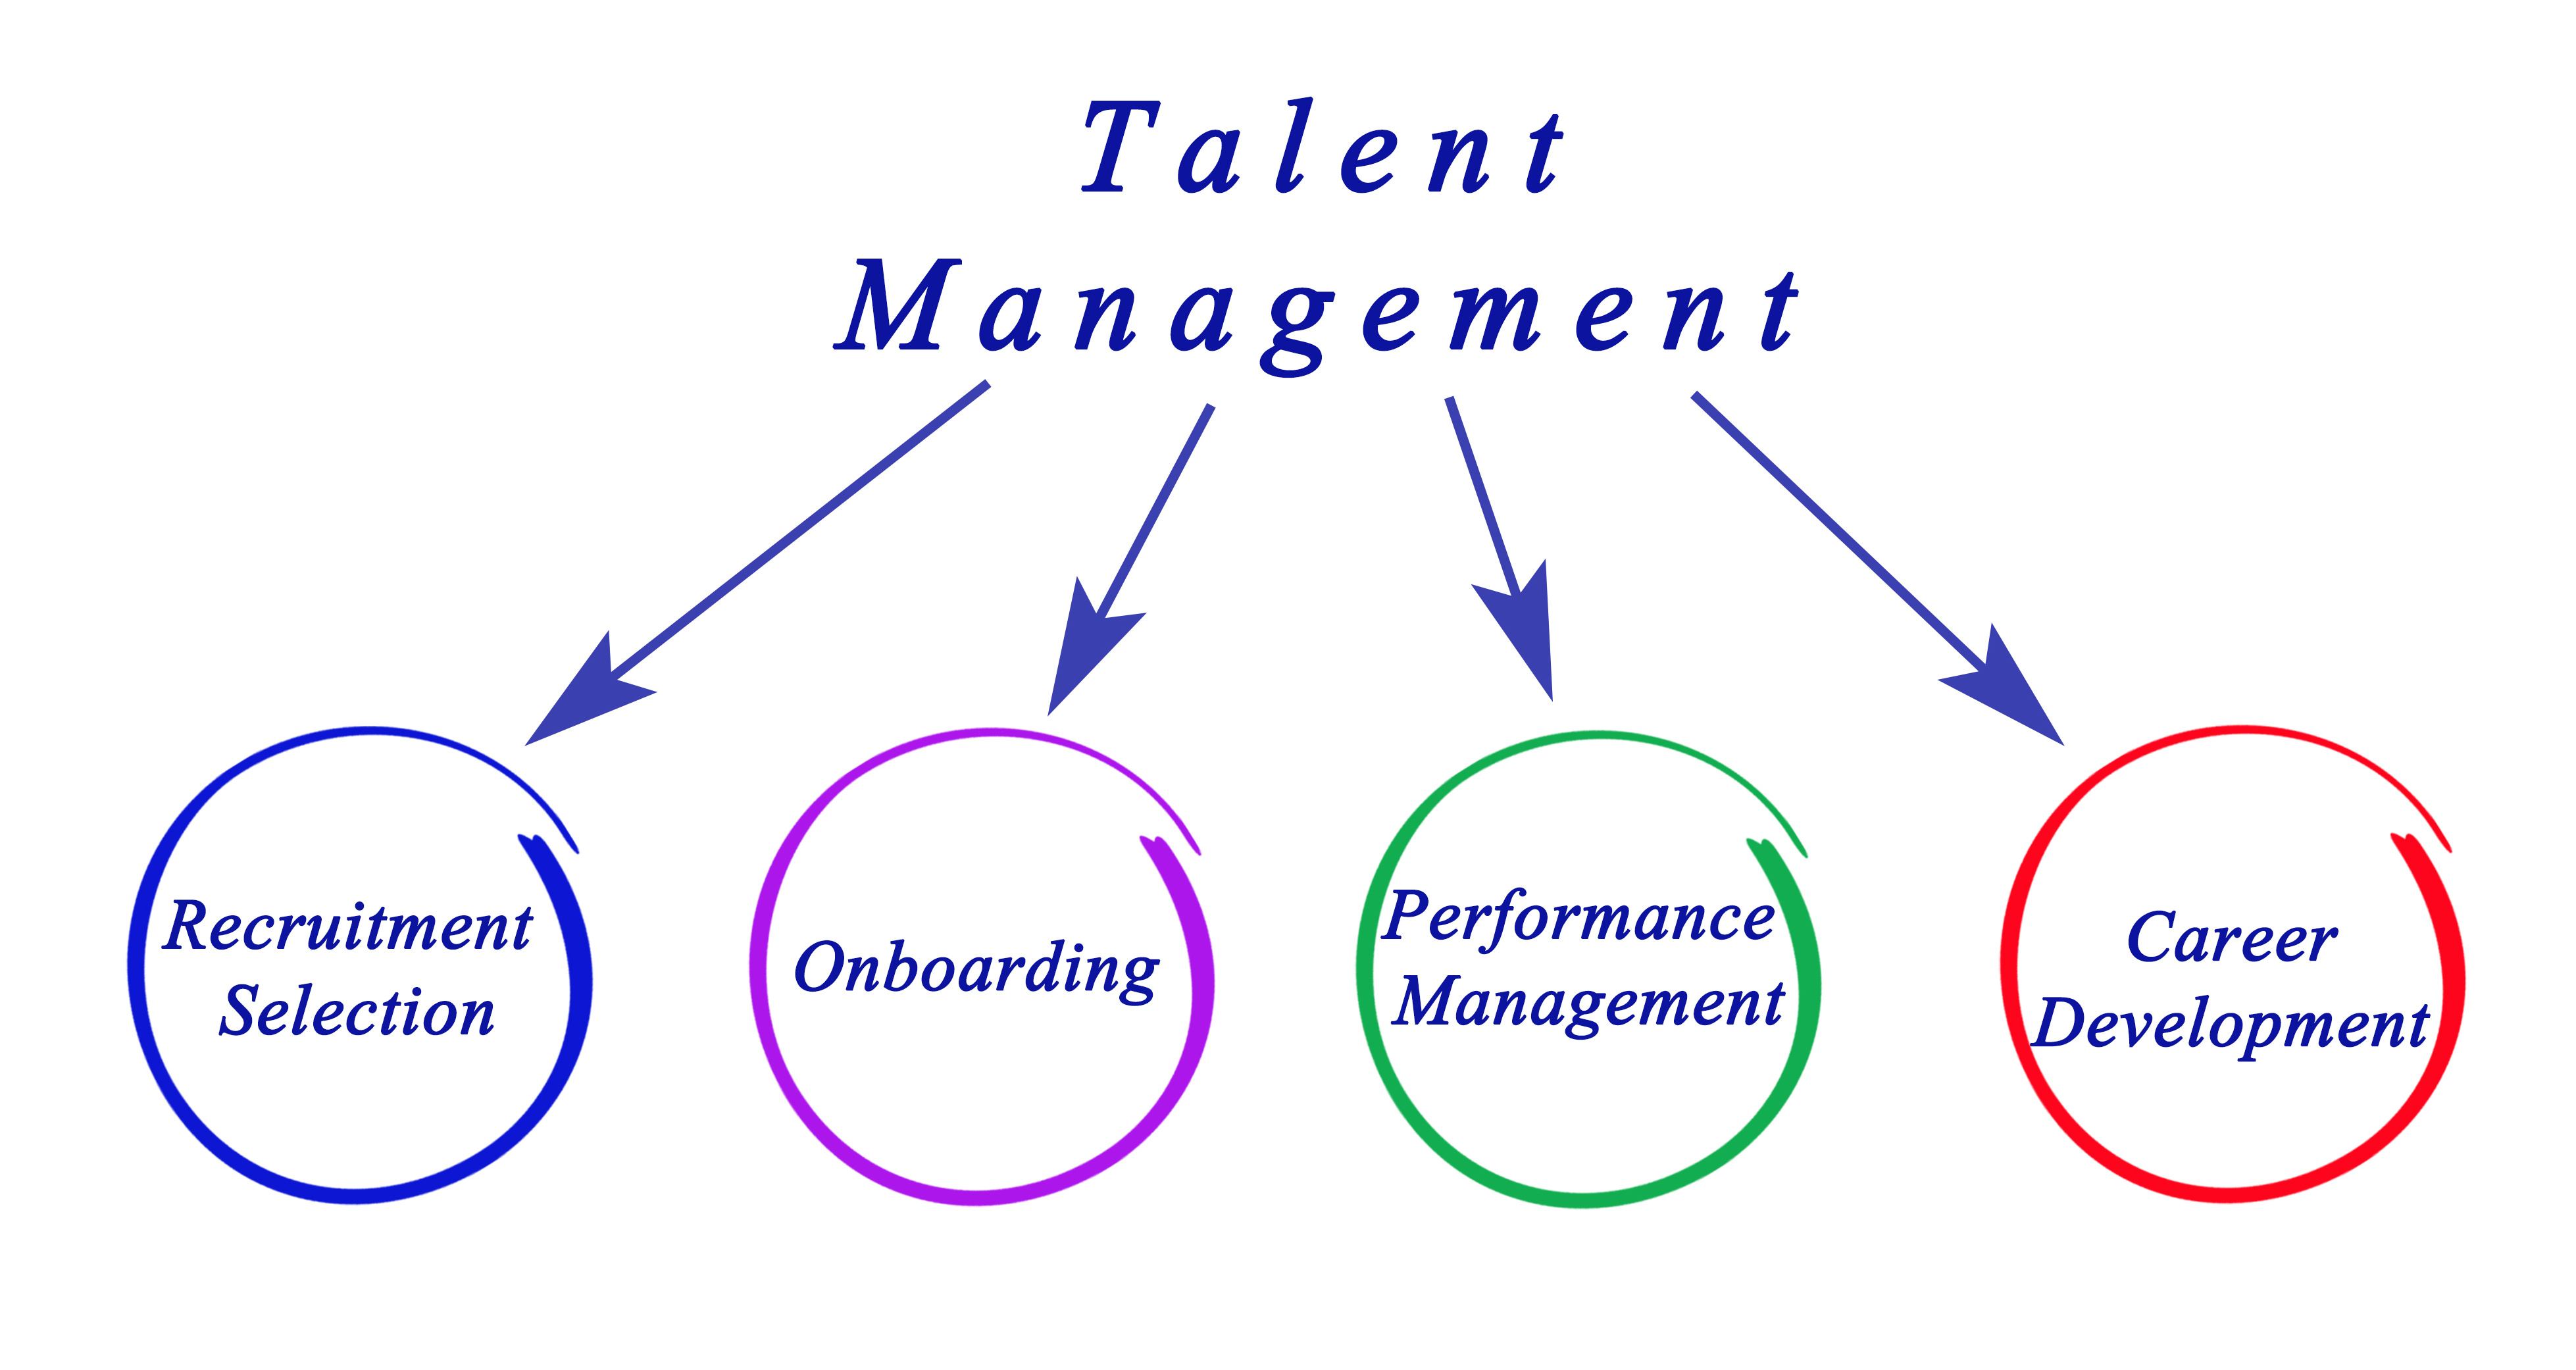 thesis on talent management Thesis talent management - download as word talent management thesis doc (doc), pdf file (pdf), text file (txt) or read online philippine christian university 1648 taft avenue cor zodat u beter talent management thesis onderbouwde strategische hr contact us today for phd guidance.